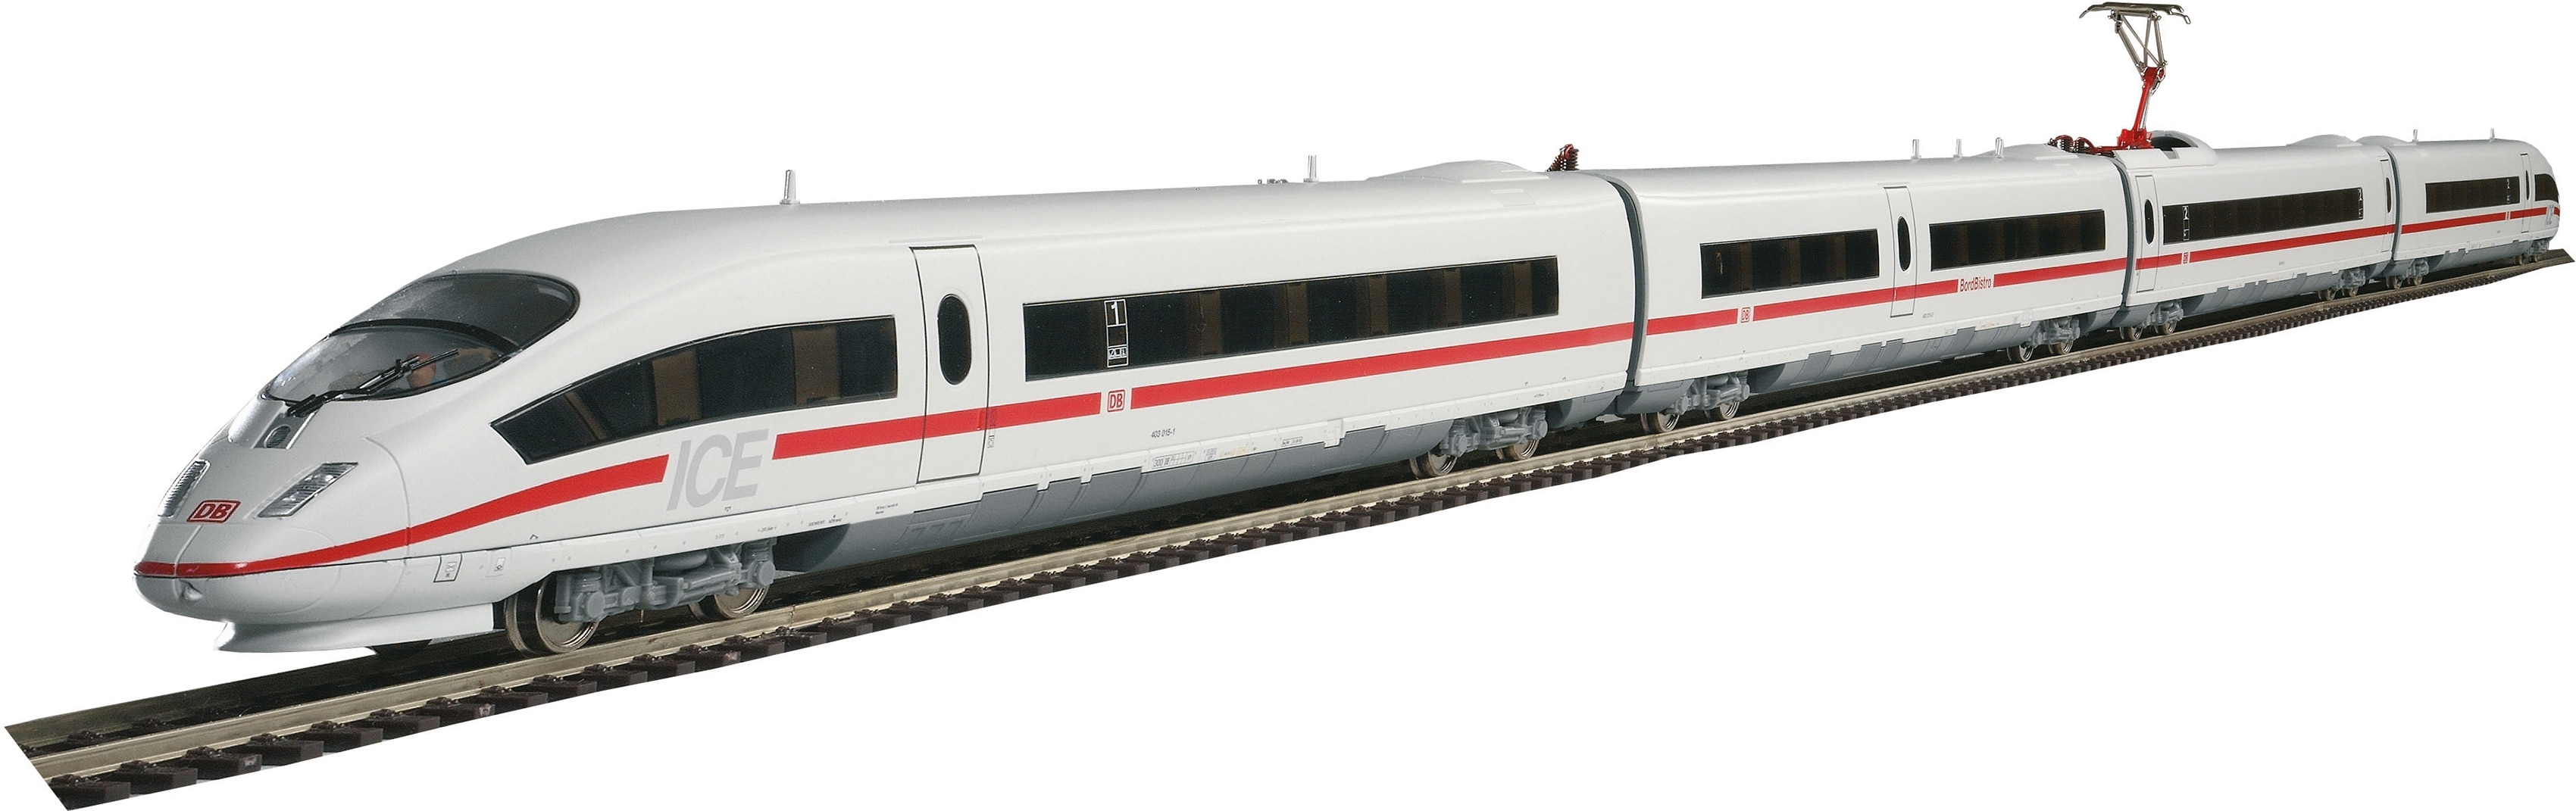 PIKO Modelleisenbahn-Set SmartControl light ICE 3 DB, (59027) weiß Kinder Modelleisenbahn-Sets Modelleisenbahnen Autos, Eisenbahn Modellbau